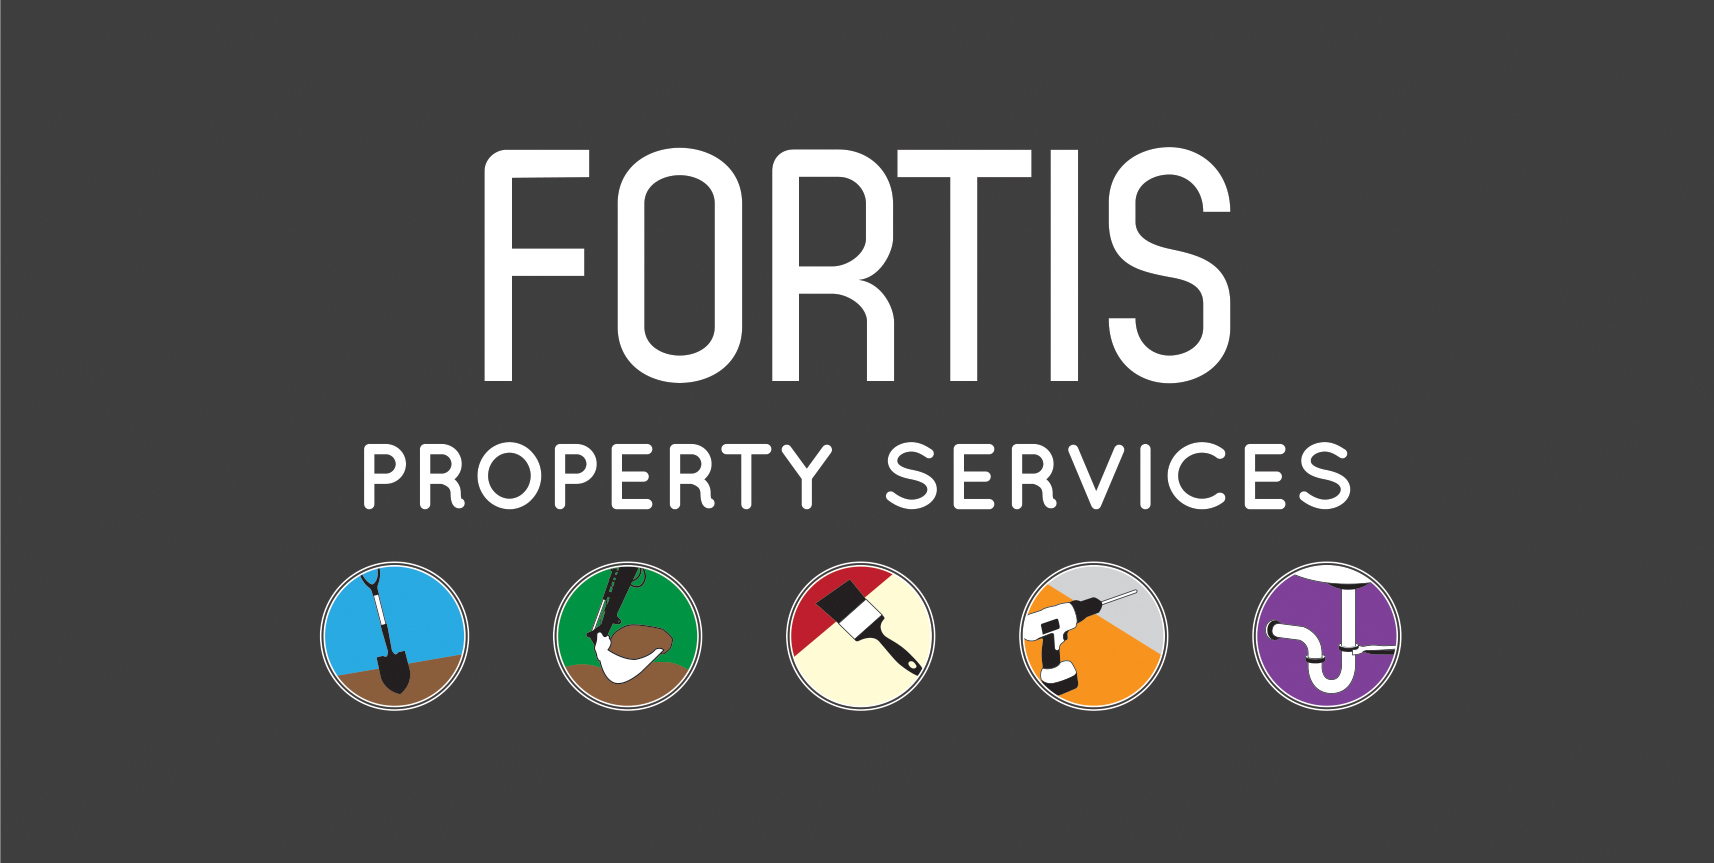 Fortis Property Services Logo second alternative reverse